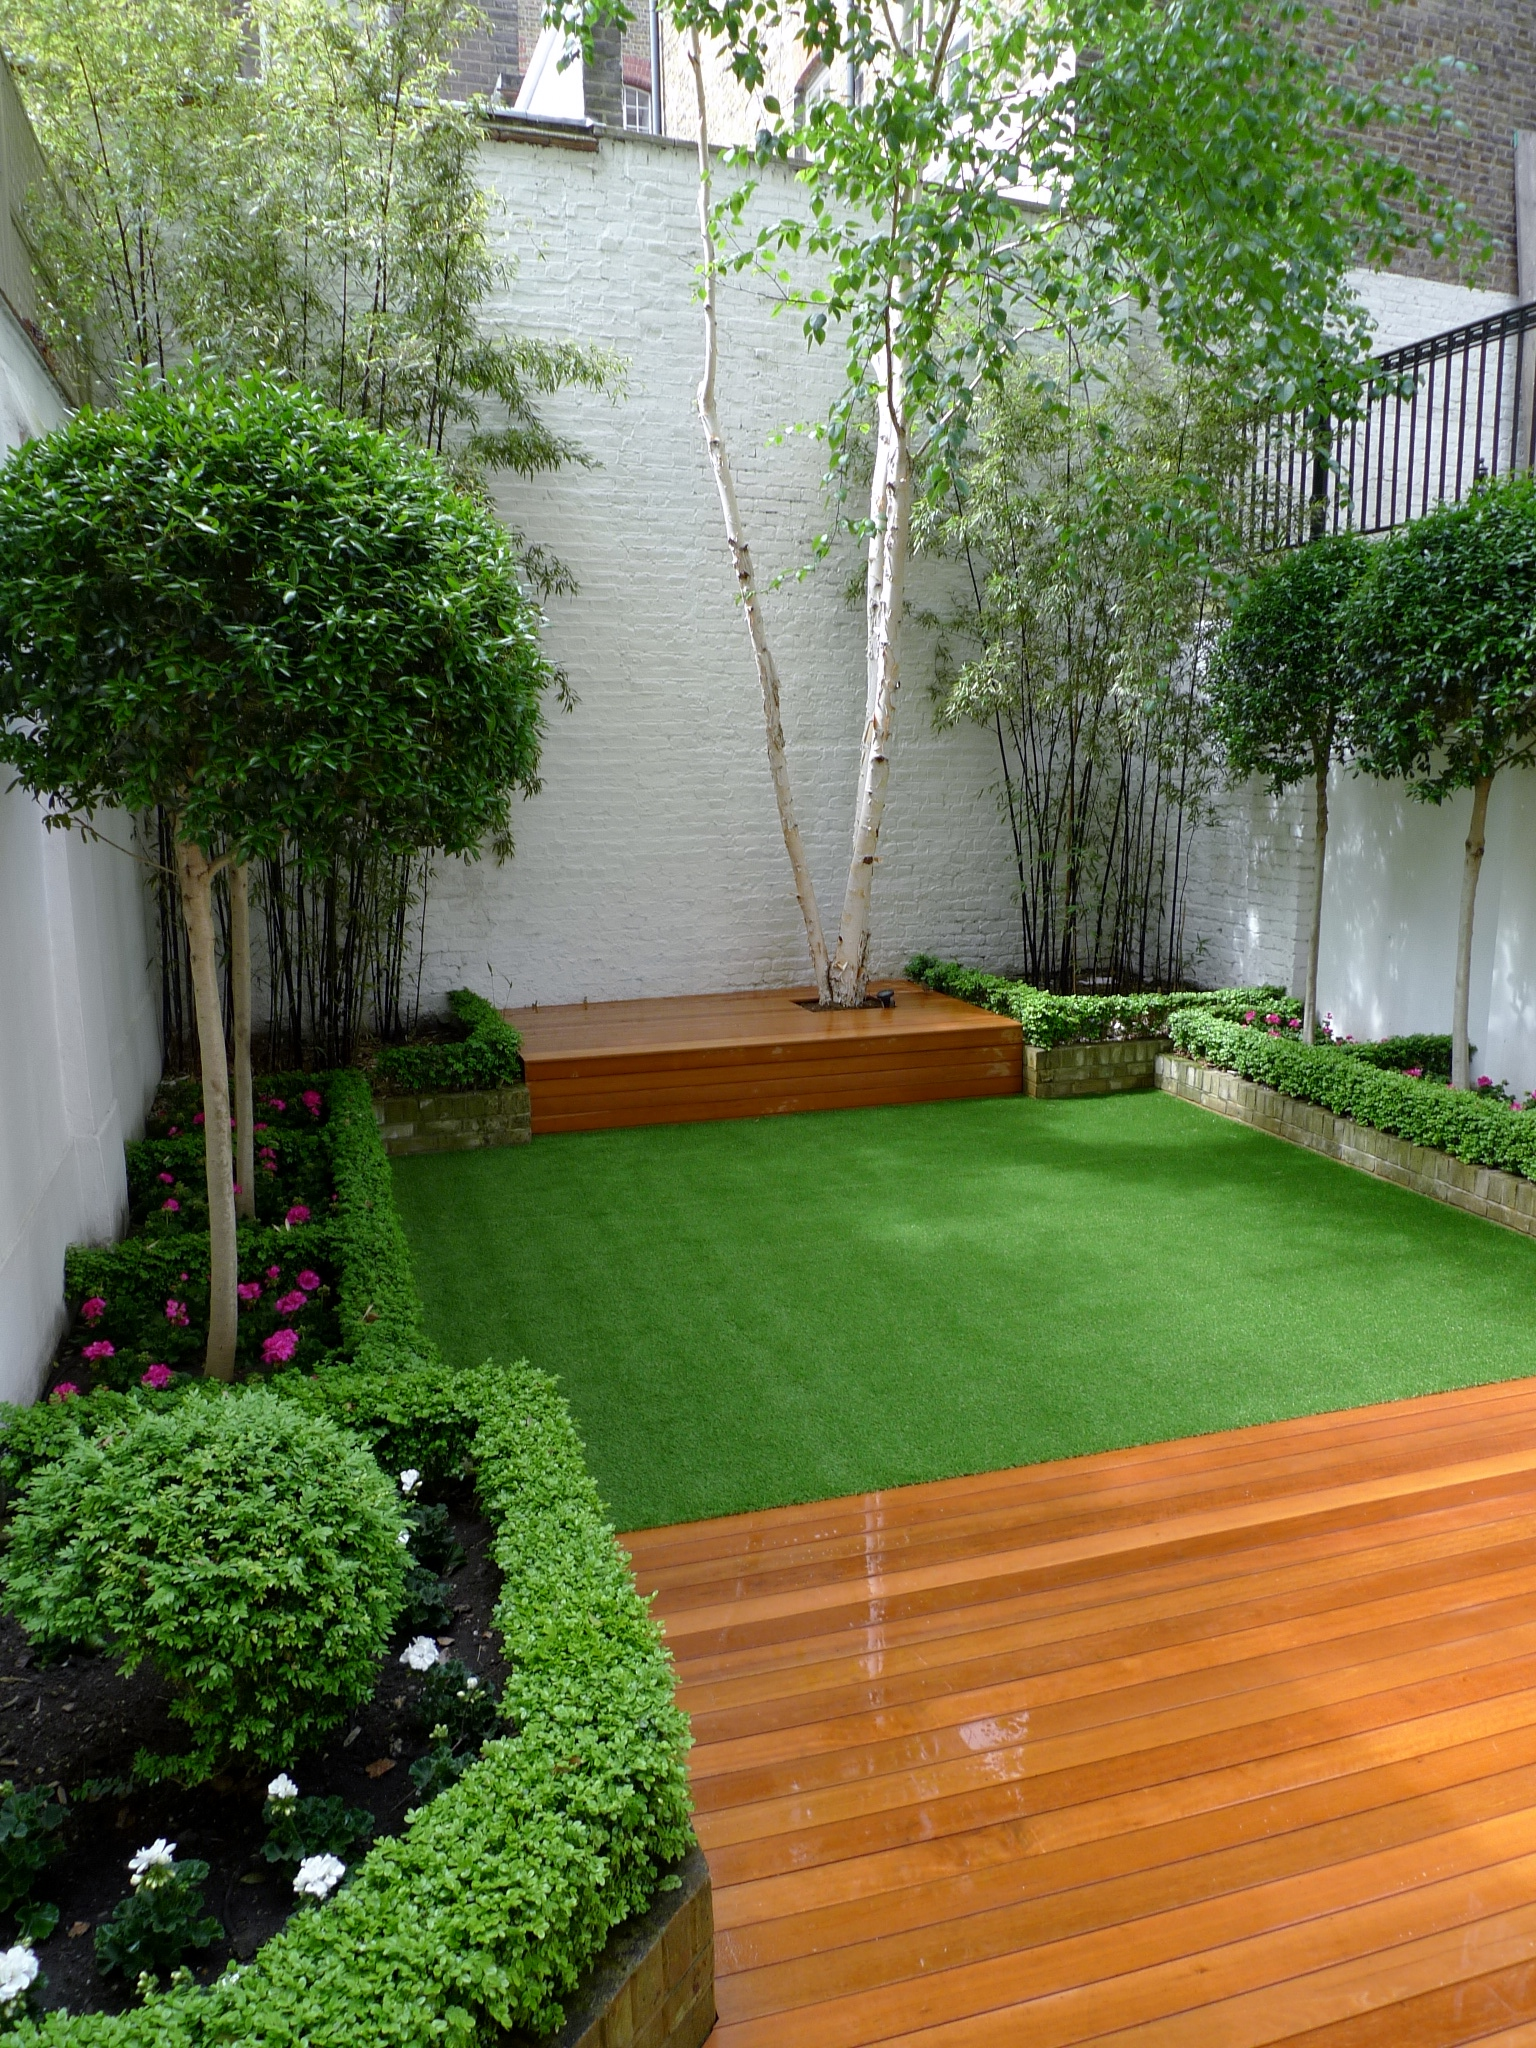 Chelsea modern garden design london london garden blog for Modern garden design